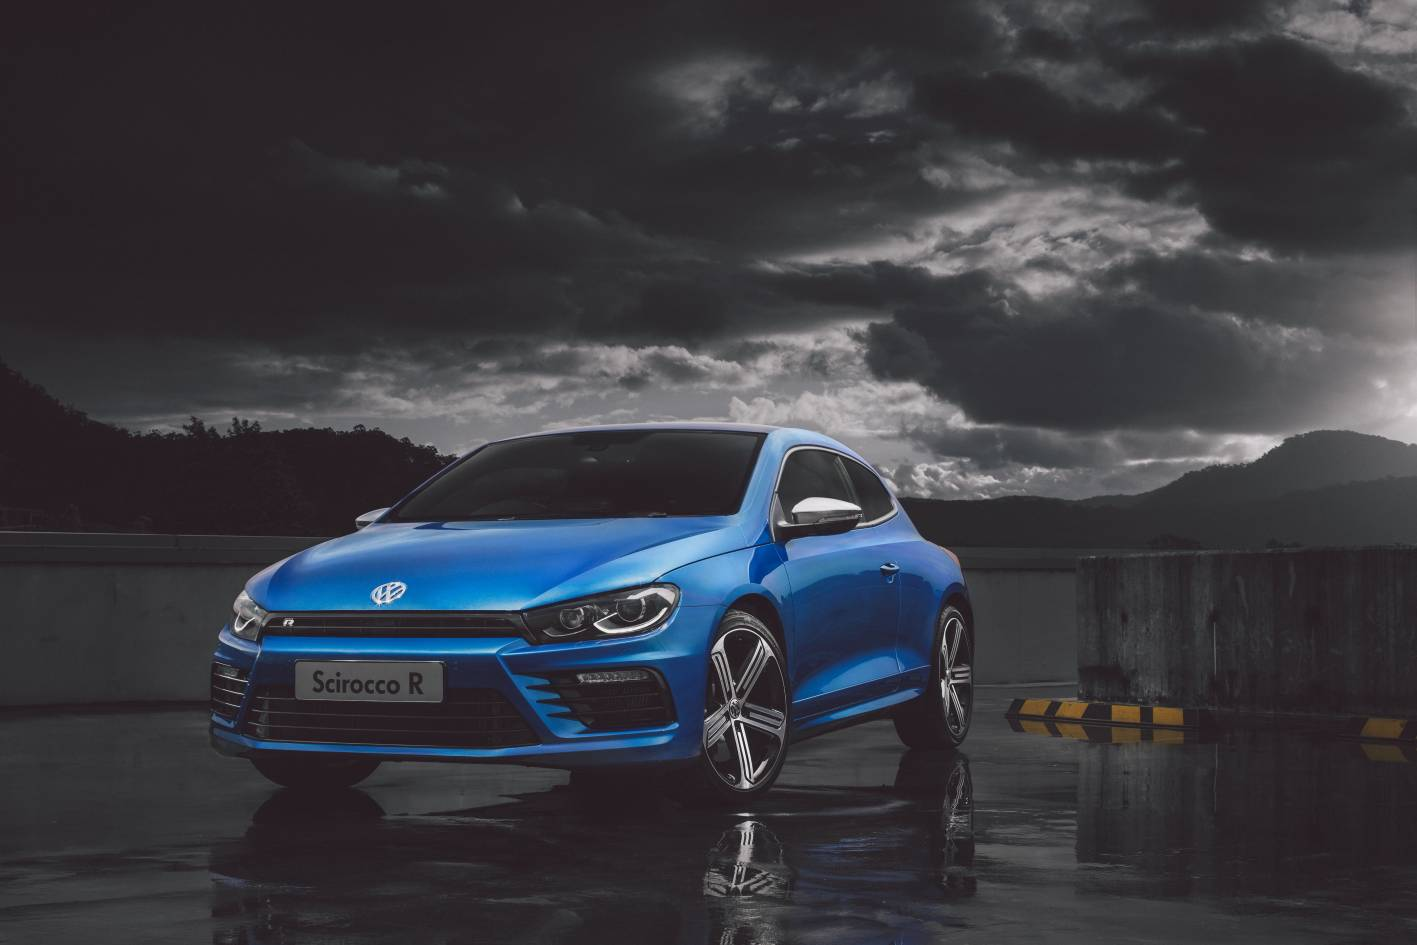 2015 Volkswagen Scirocco R on sale now. Pricing TBA ...